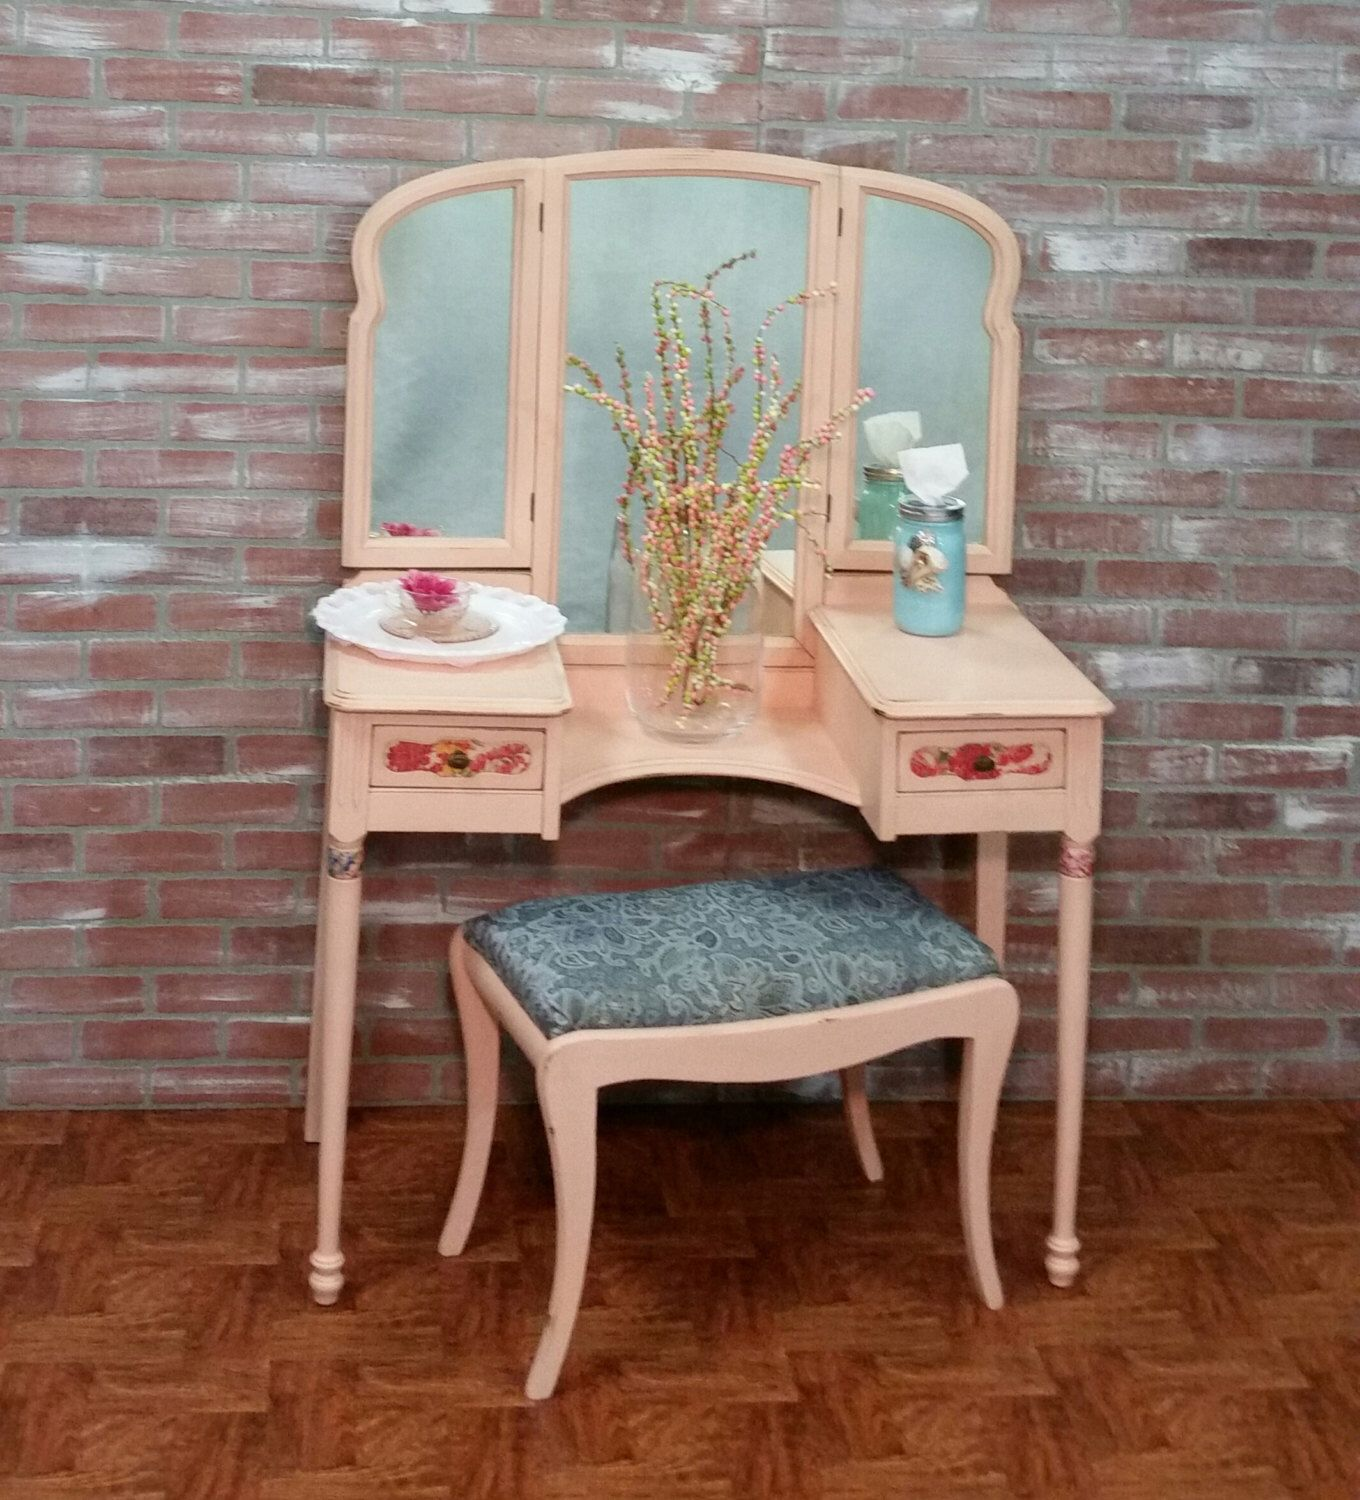 of oksunglassesn design vanity table antique us vintage mirror and cool style wall with lights